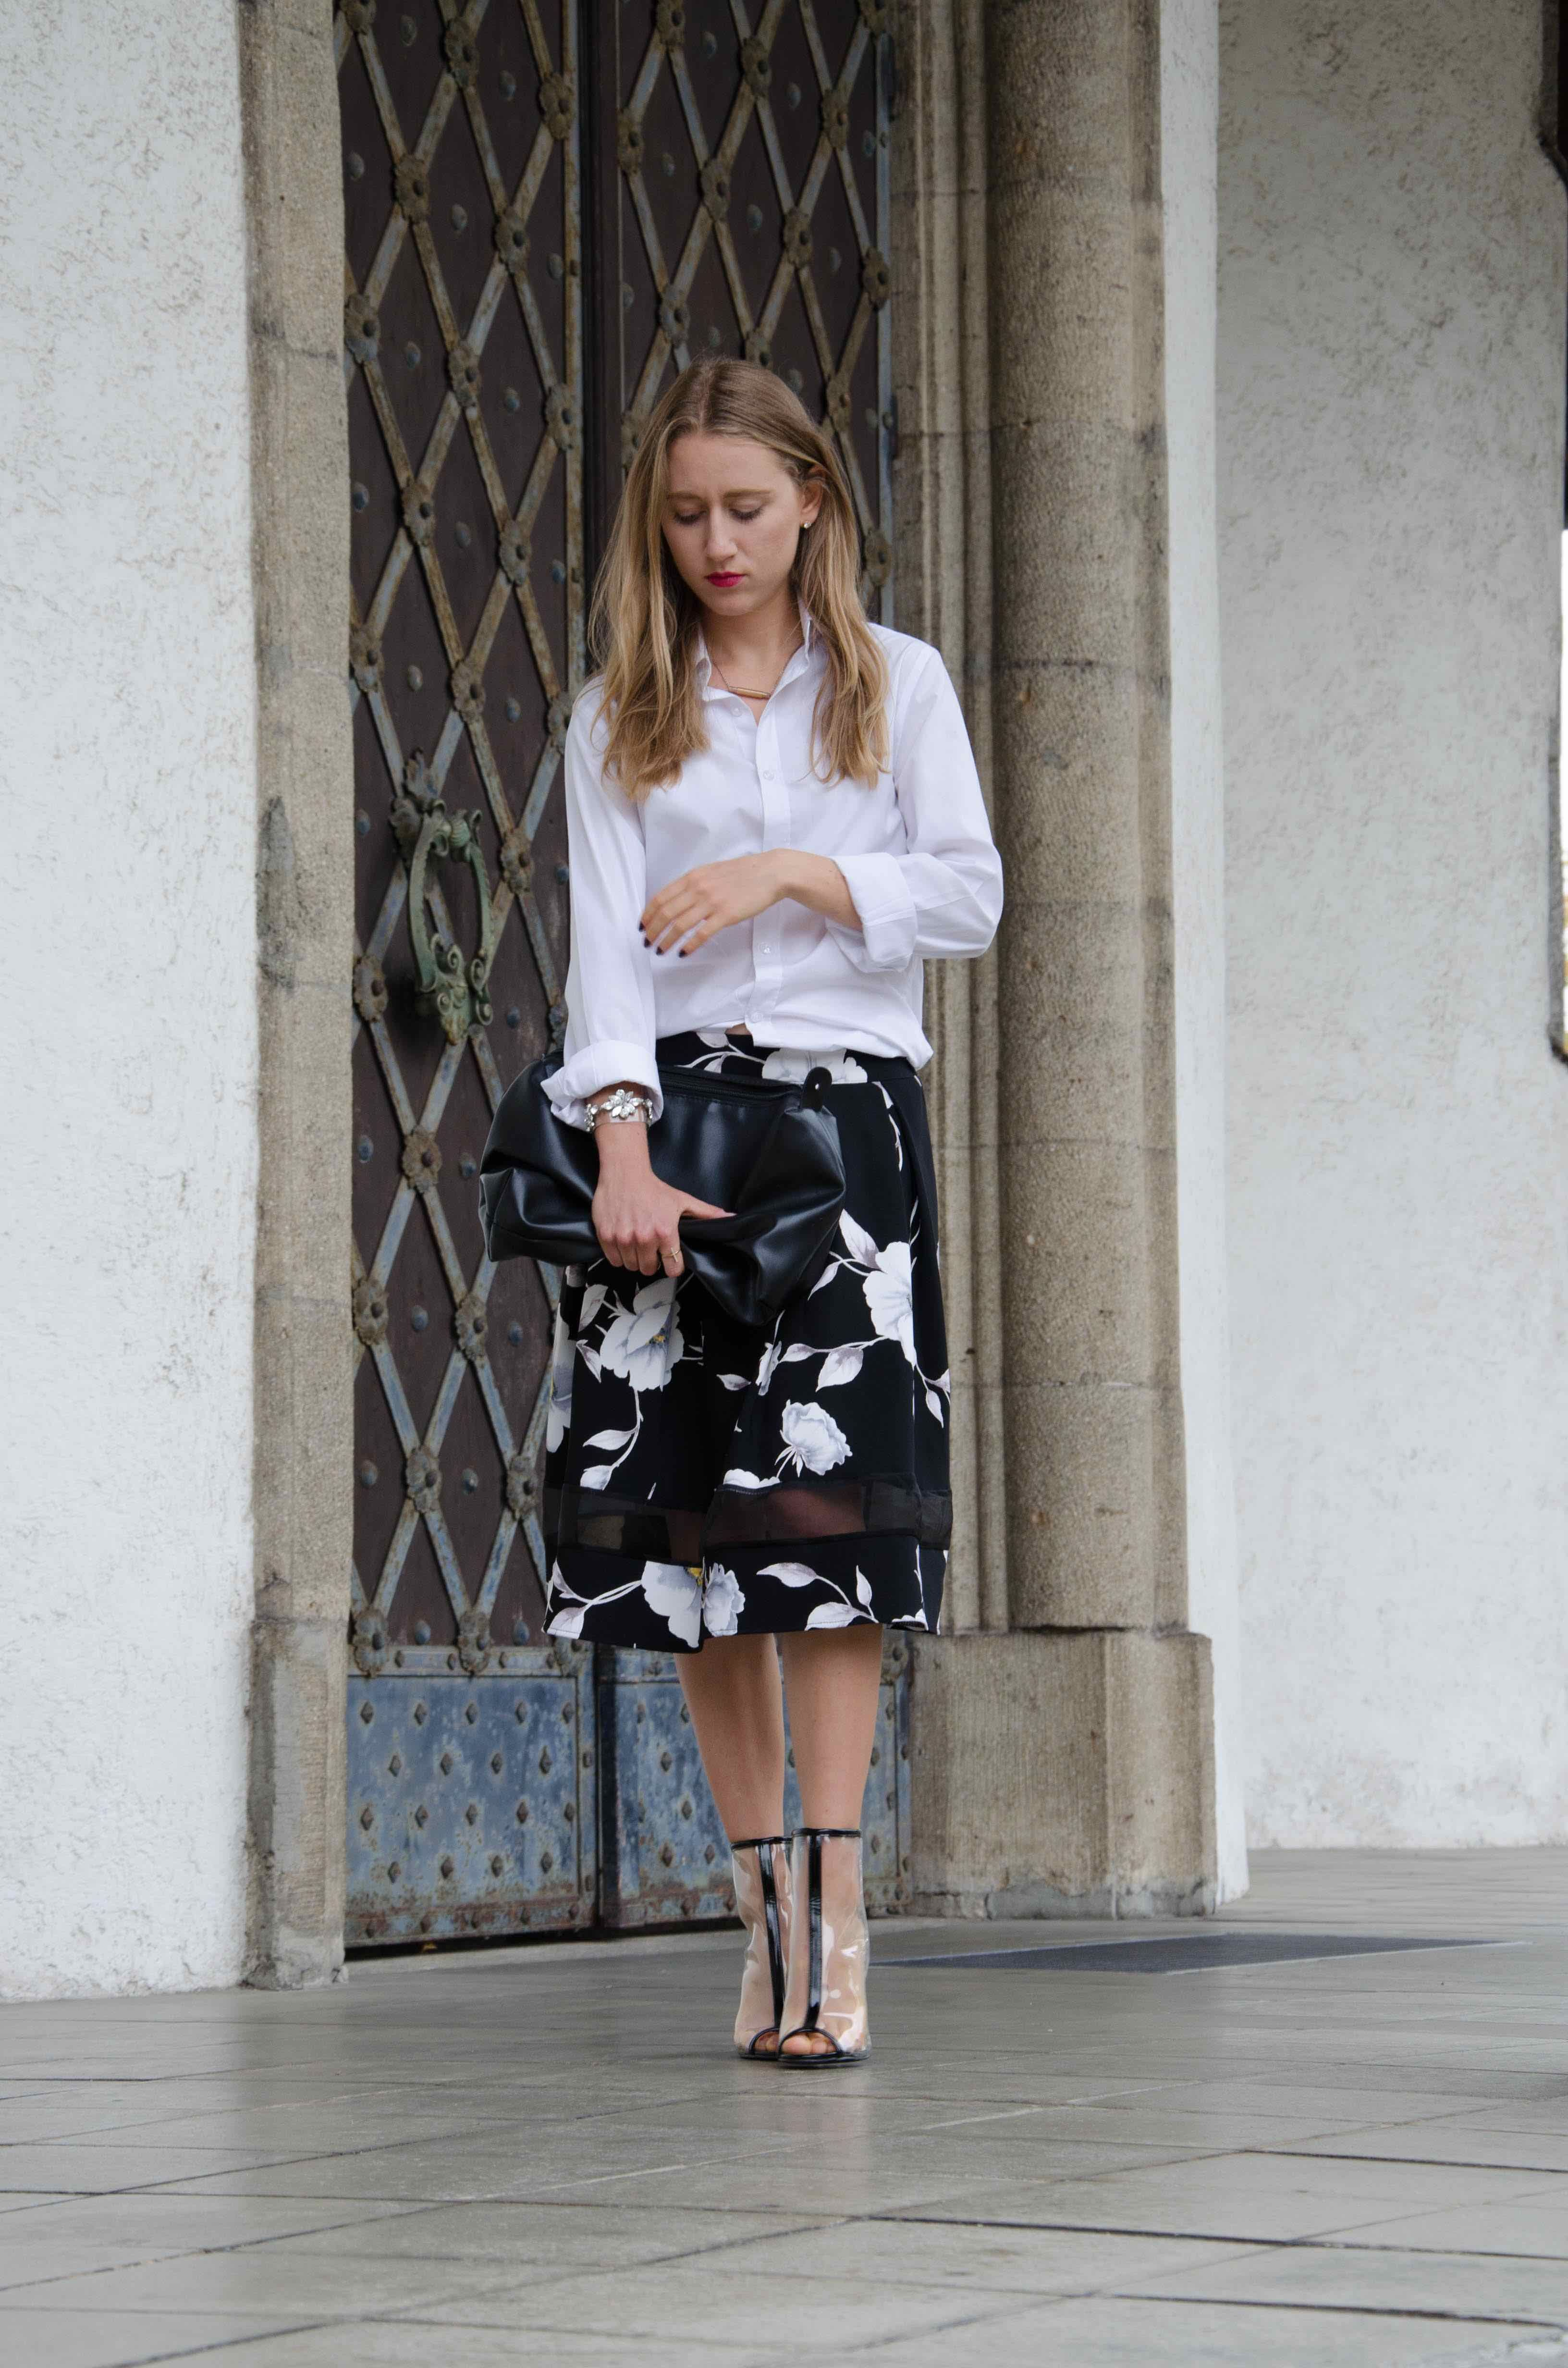 PetiiteNoir / Classic summer outfit with a white blouse, flower skirt and transparent heels